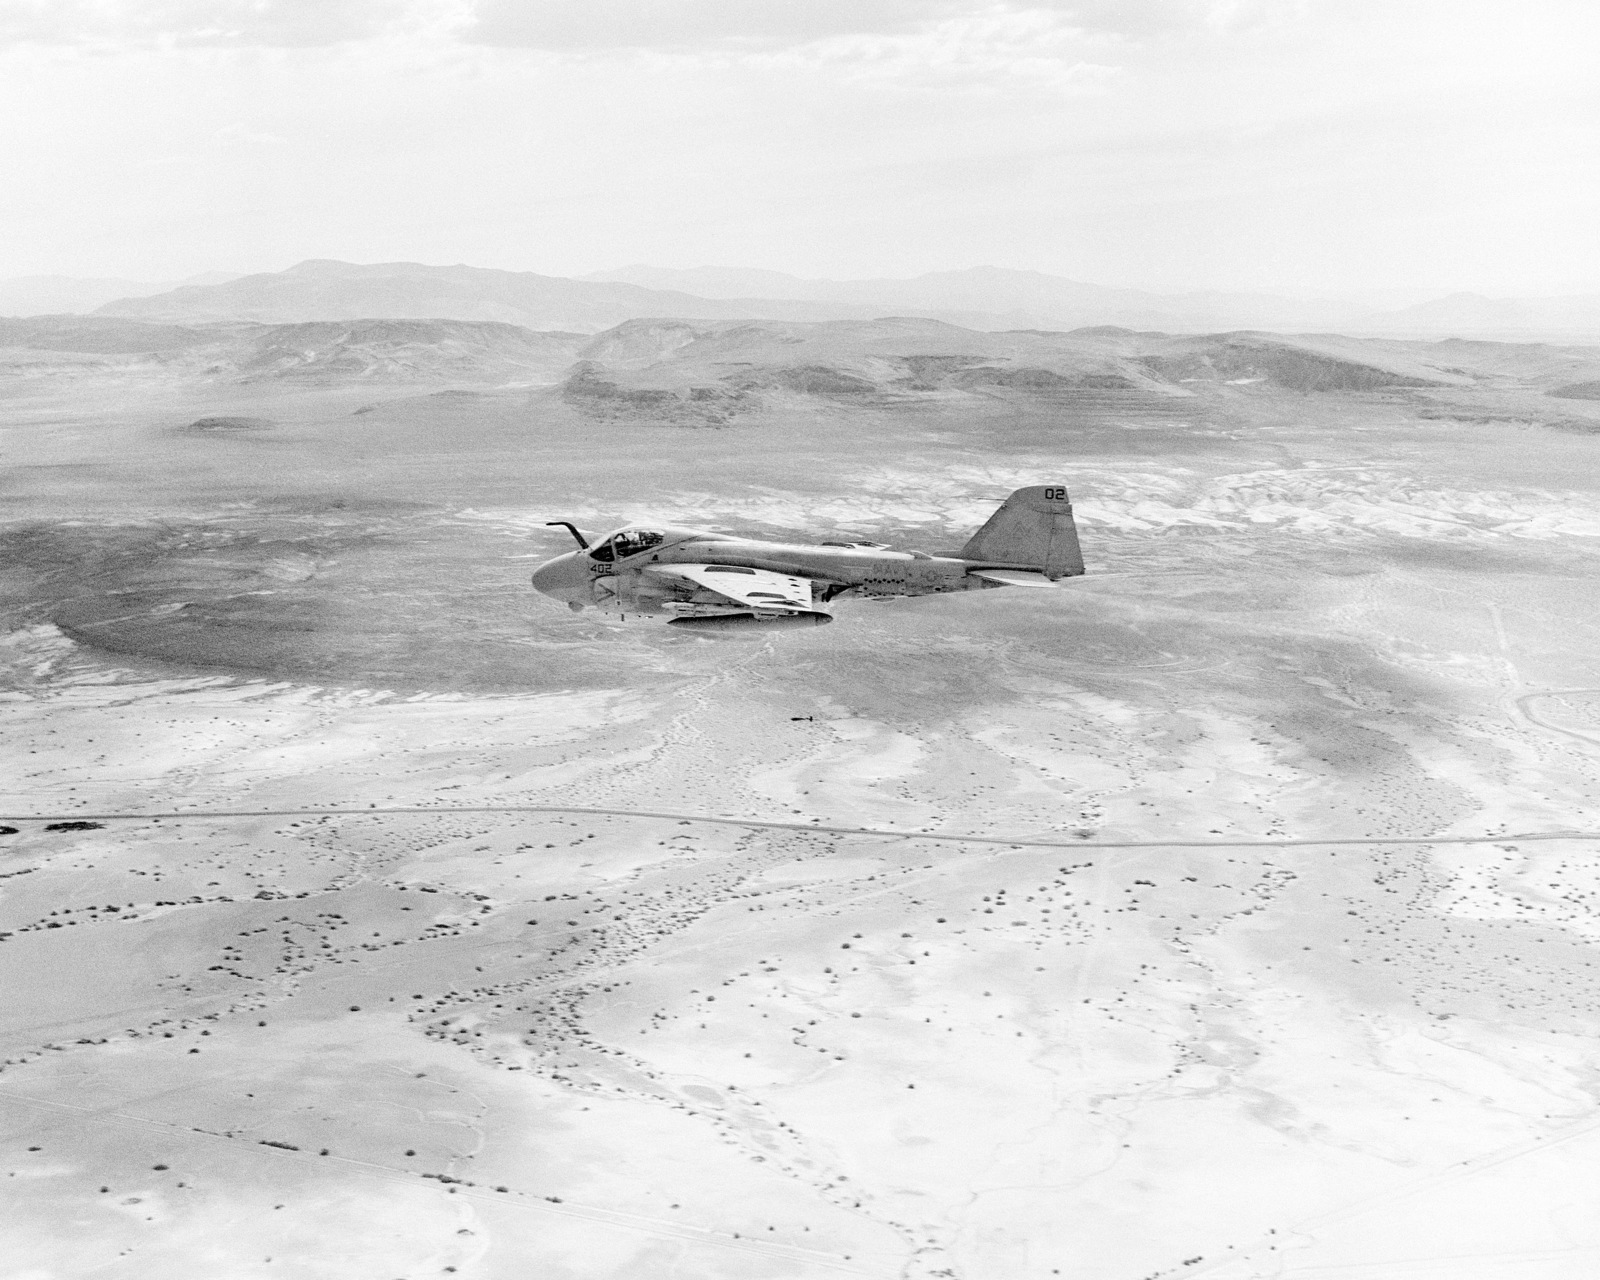 An air-to-air left side view of an Attack Squadron 304 (VA-304) A-6E Intruder aircraft near Naval Air Station, Fallon, during Reserve Carrier Air Wing 30 annual training operations